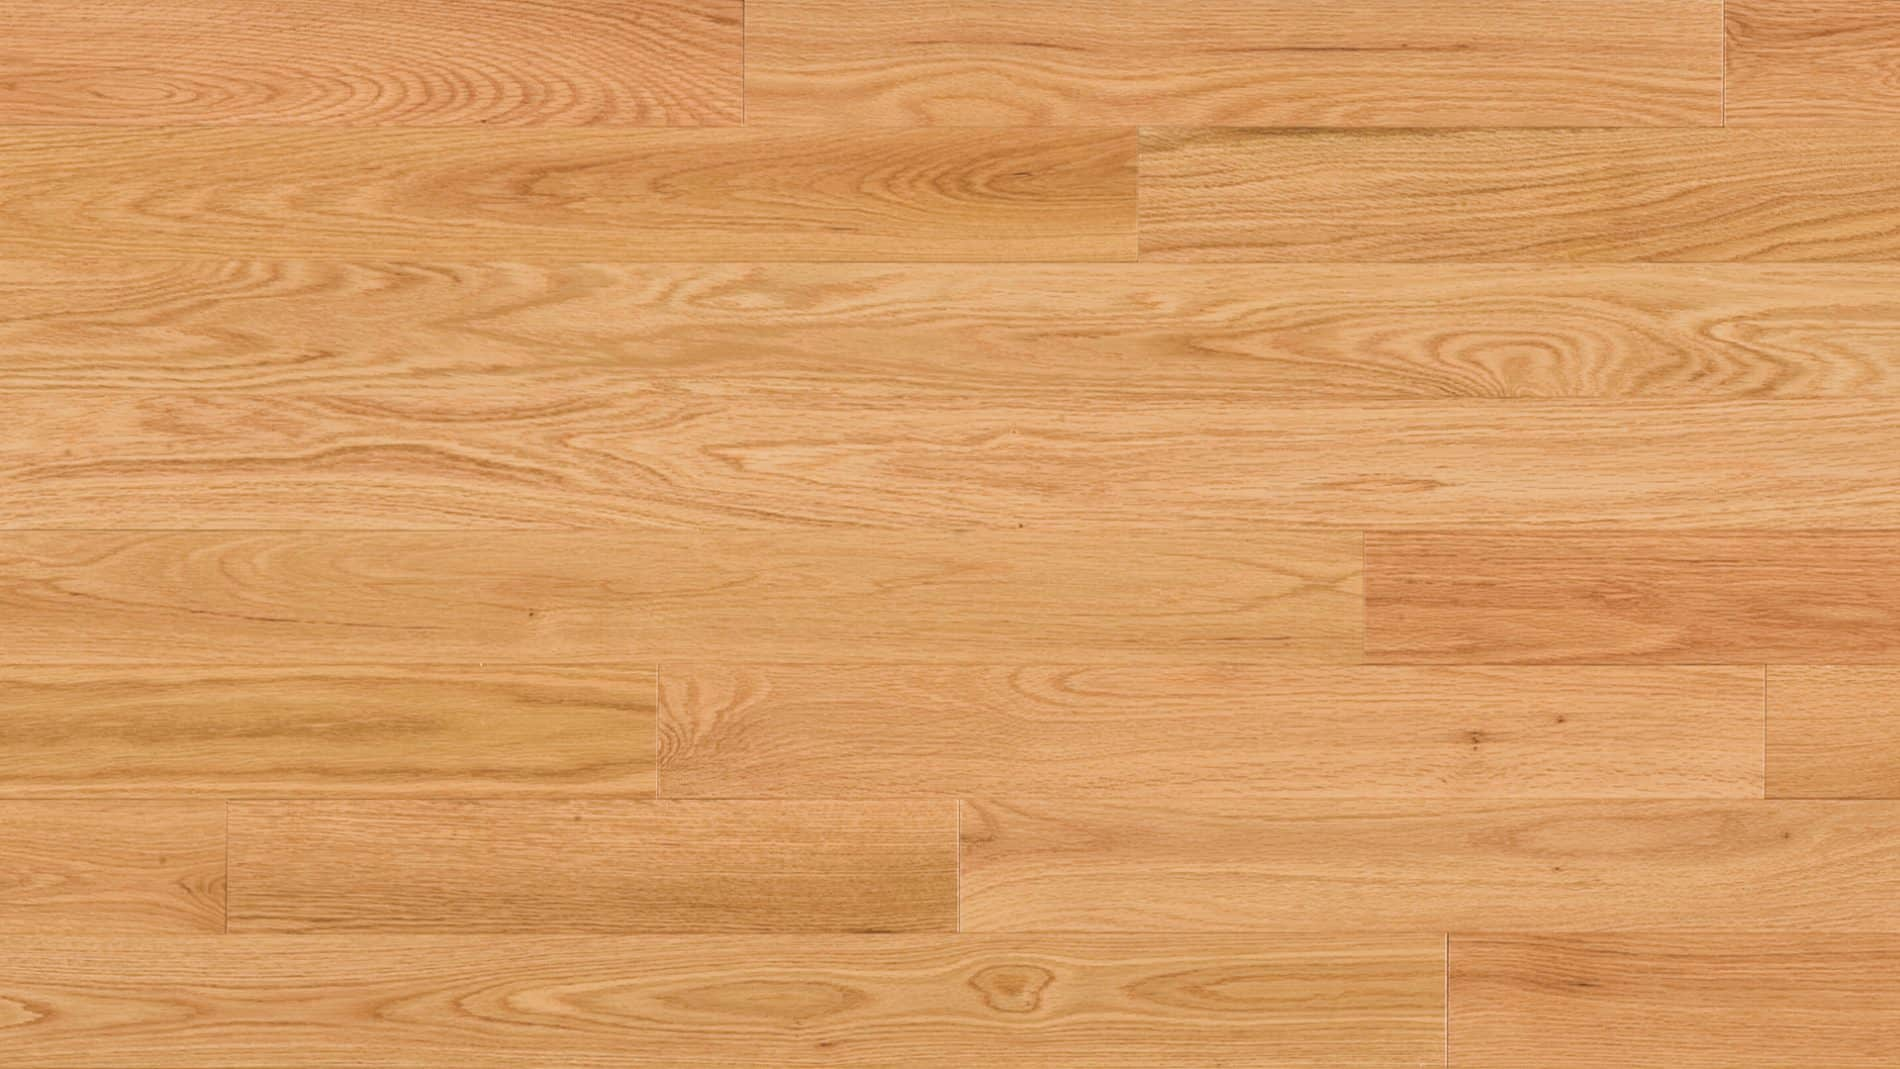 Hardwood floor | Red oak select and better natural